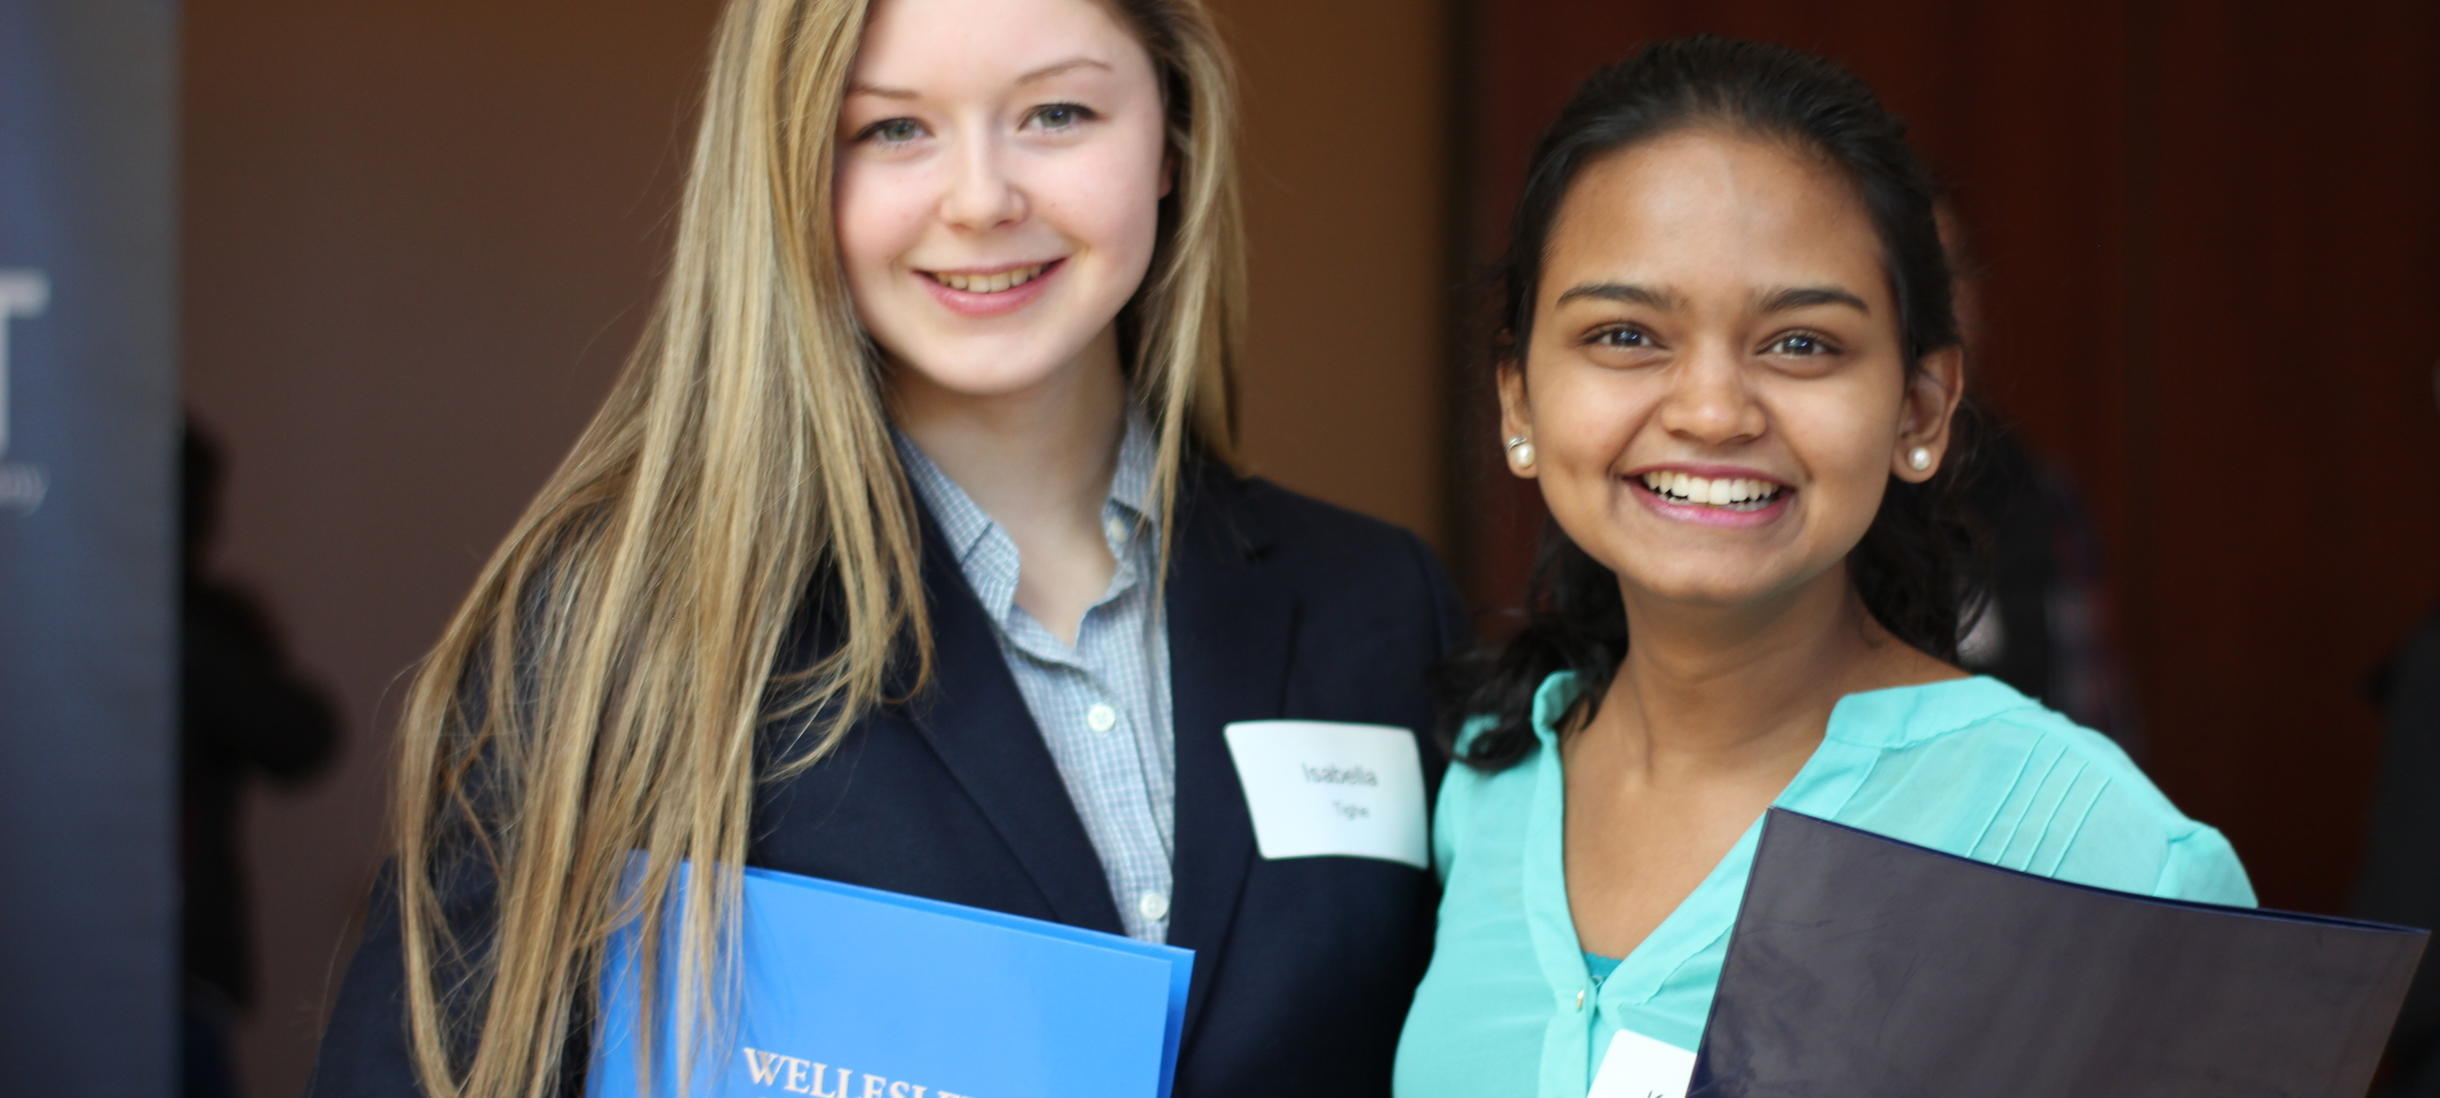 Two students smiling holding Wellesley College folios